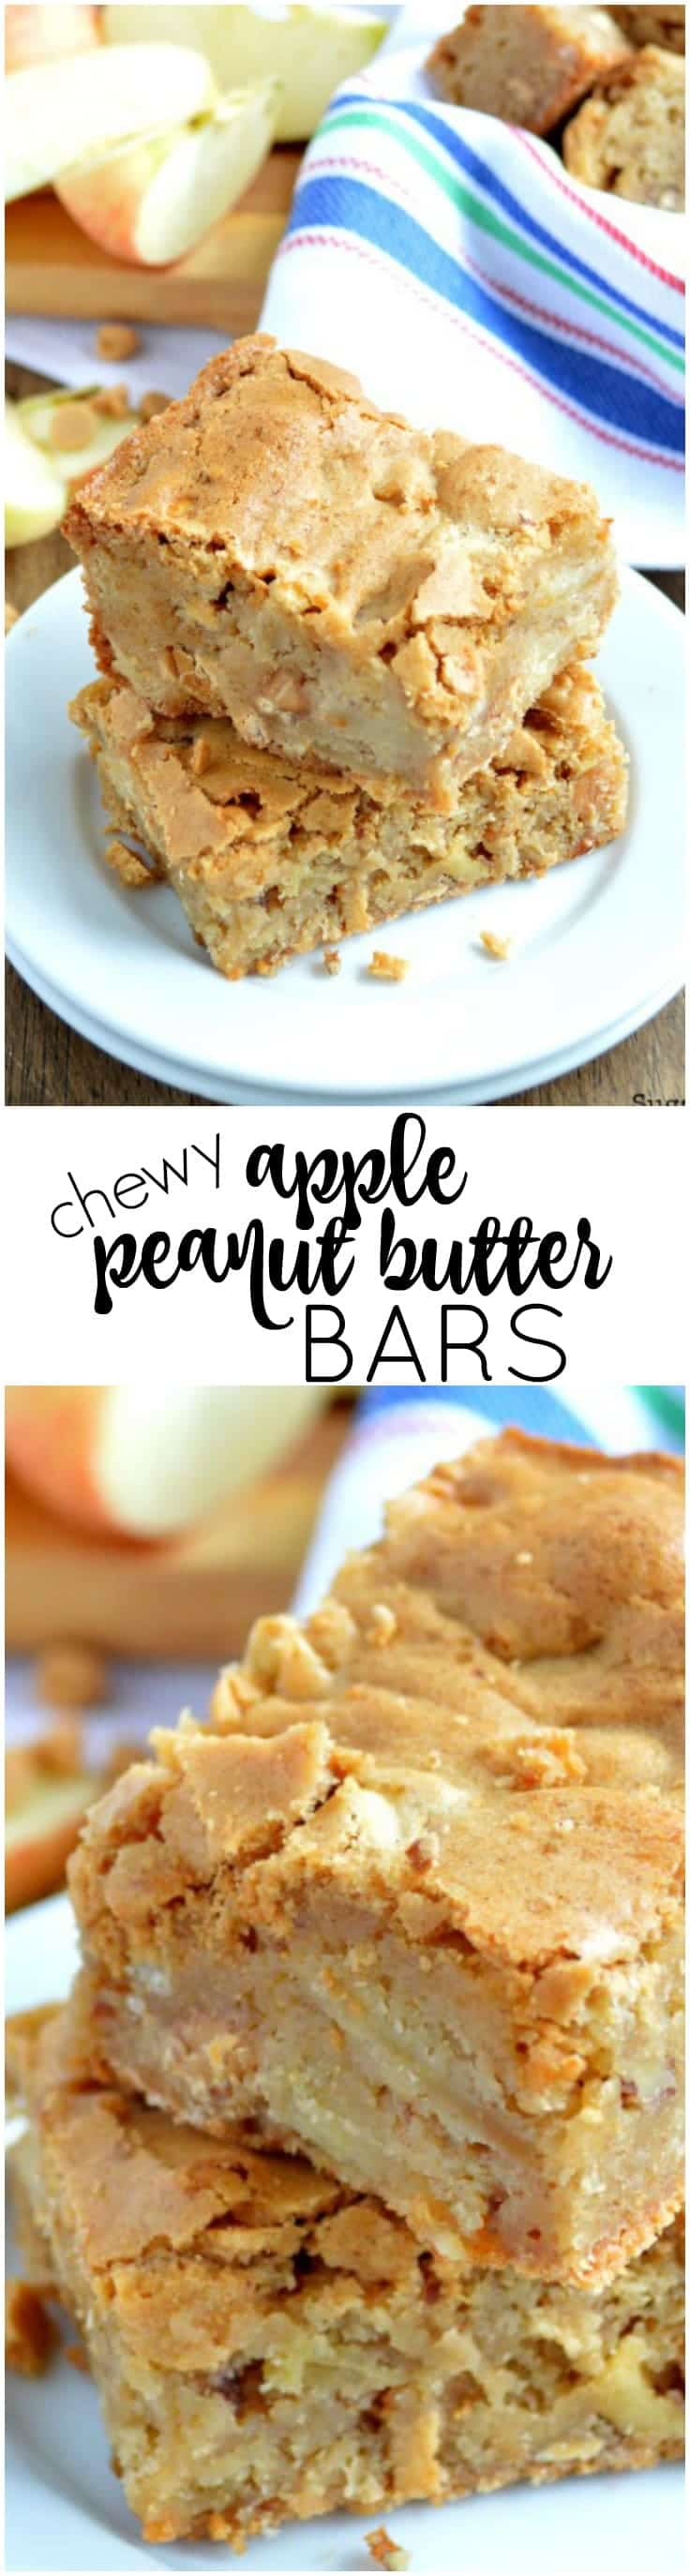 These Chewy Apple Peanut Butter Bars are simple to make and are loaded with cookie bar goodness. A favorite recipe no matter the time of year!